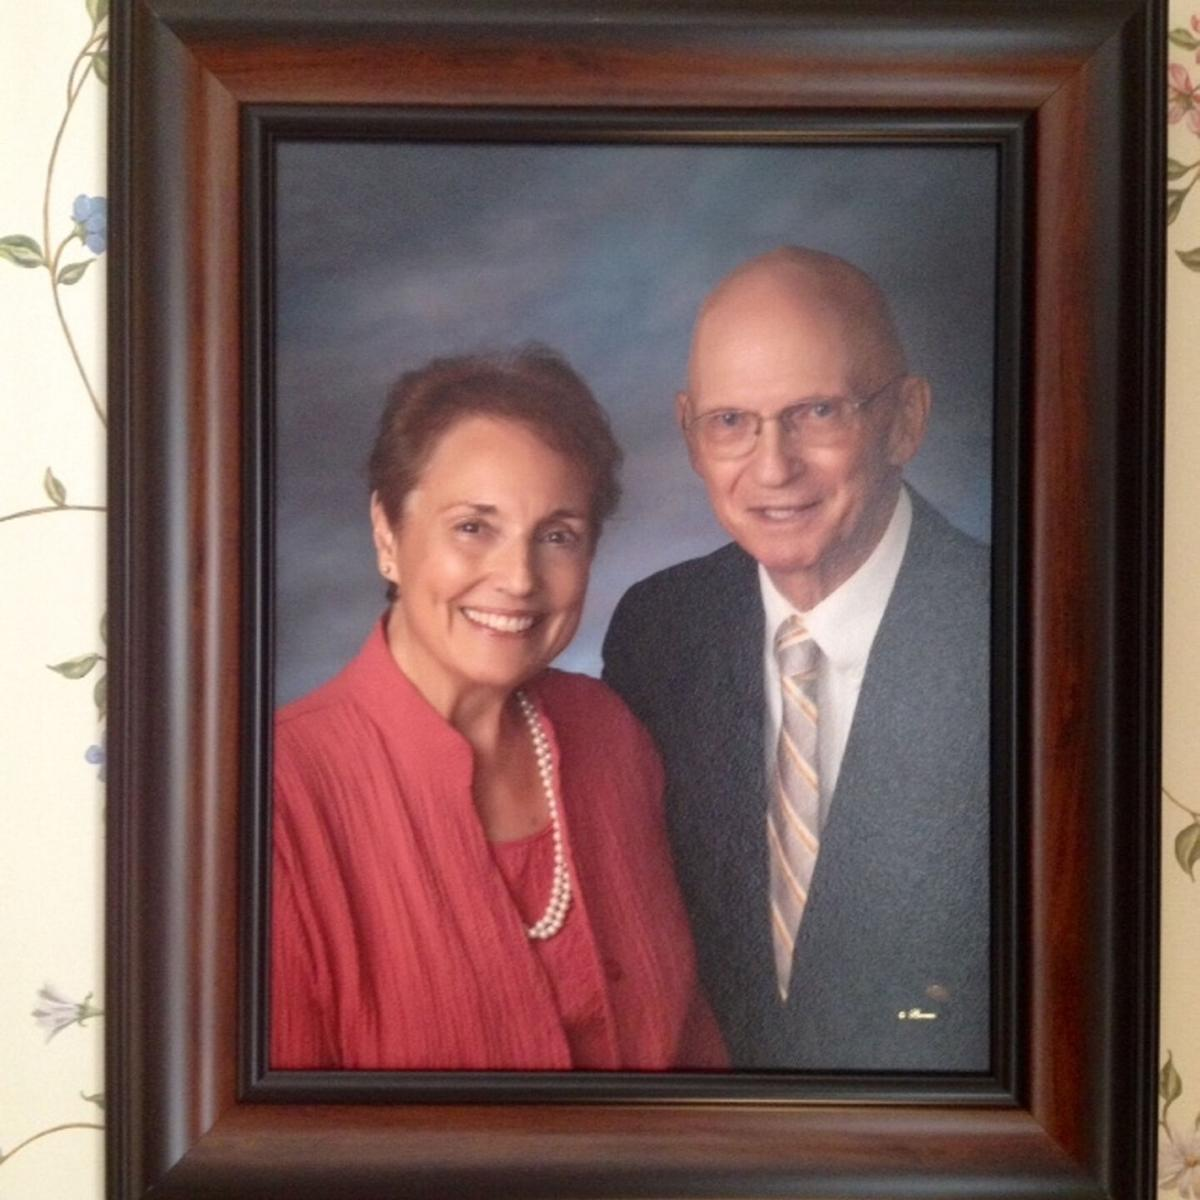 Mr. and Mrs. Stephen J. Perry, 50 years